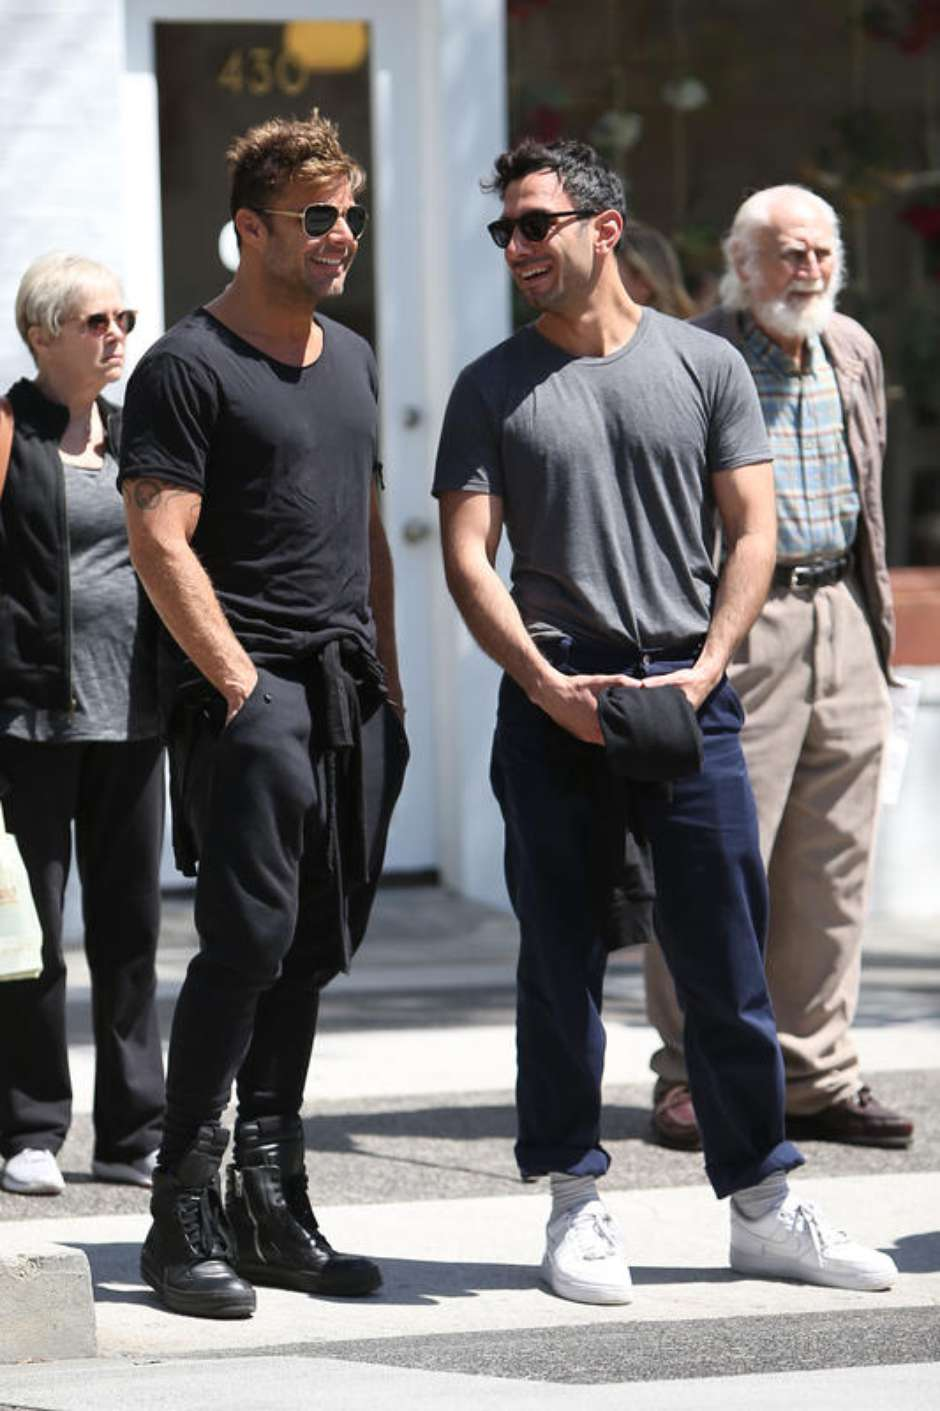 Photo © 2016 AKM GSI/The Grosby Group *EXCLUSIVE* Beverly Hills, April 4, 2016 Ricky Martin is seen with rumored new boyfriend, artist Jwan Yosef. The duo had lunch together at La Scala Restaurant before going on a stroll on the streets of sunny Beverly Hills.